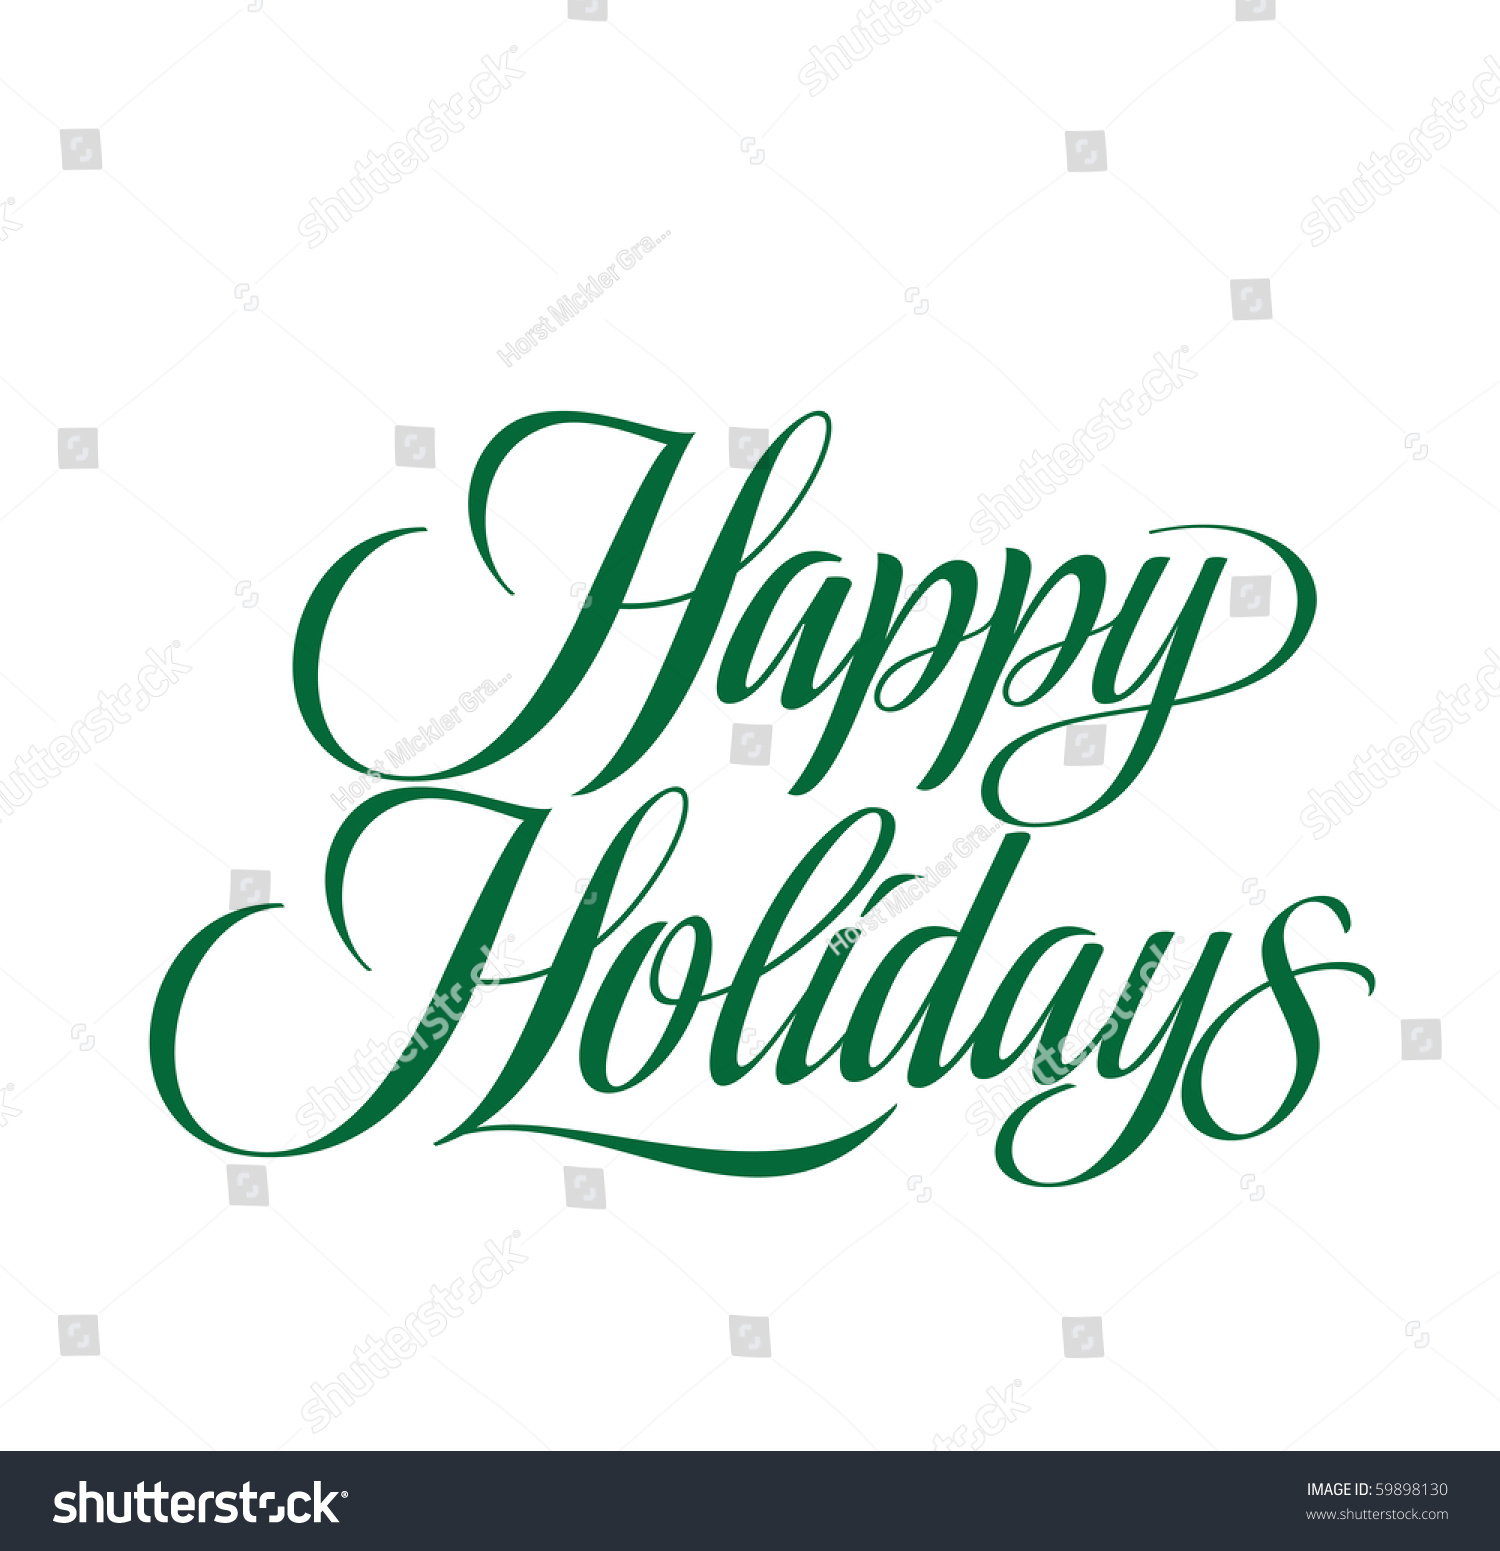 happy holidays vector lettering stock vector 2018 59898130 rh shutterstock com happy holidays calligraphy vector free happy holidays text vector